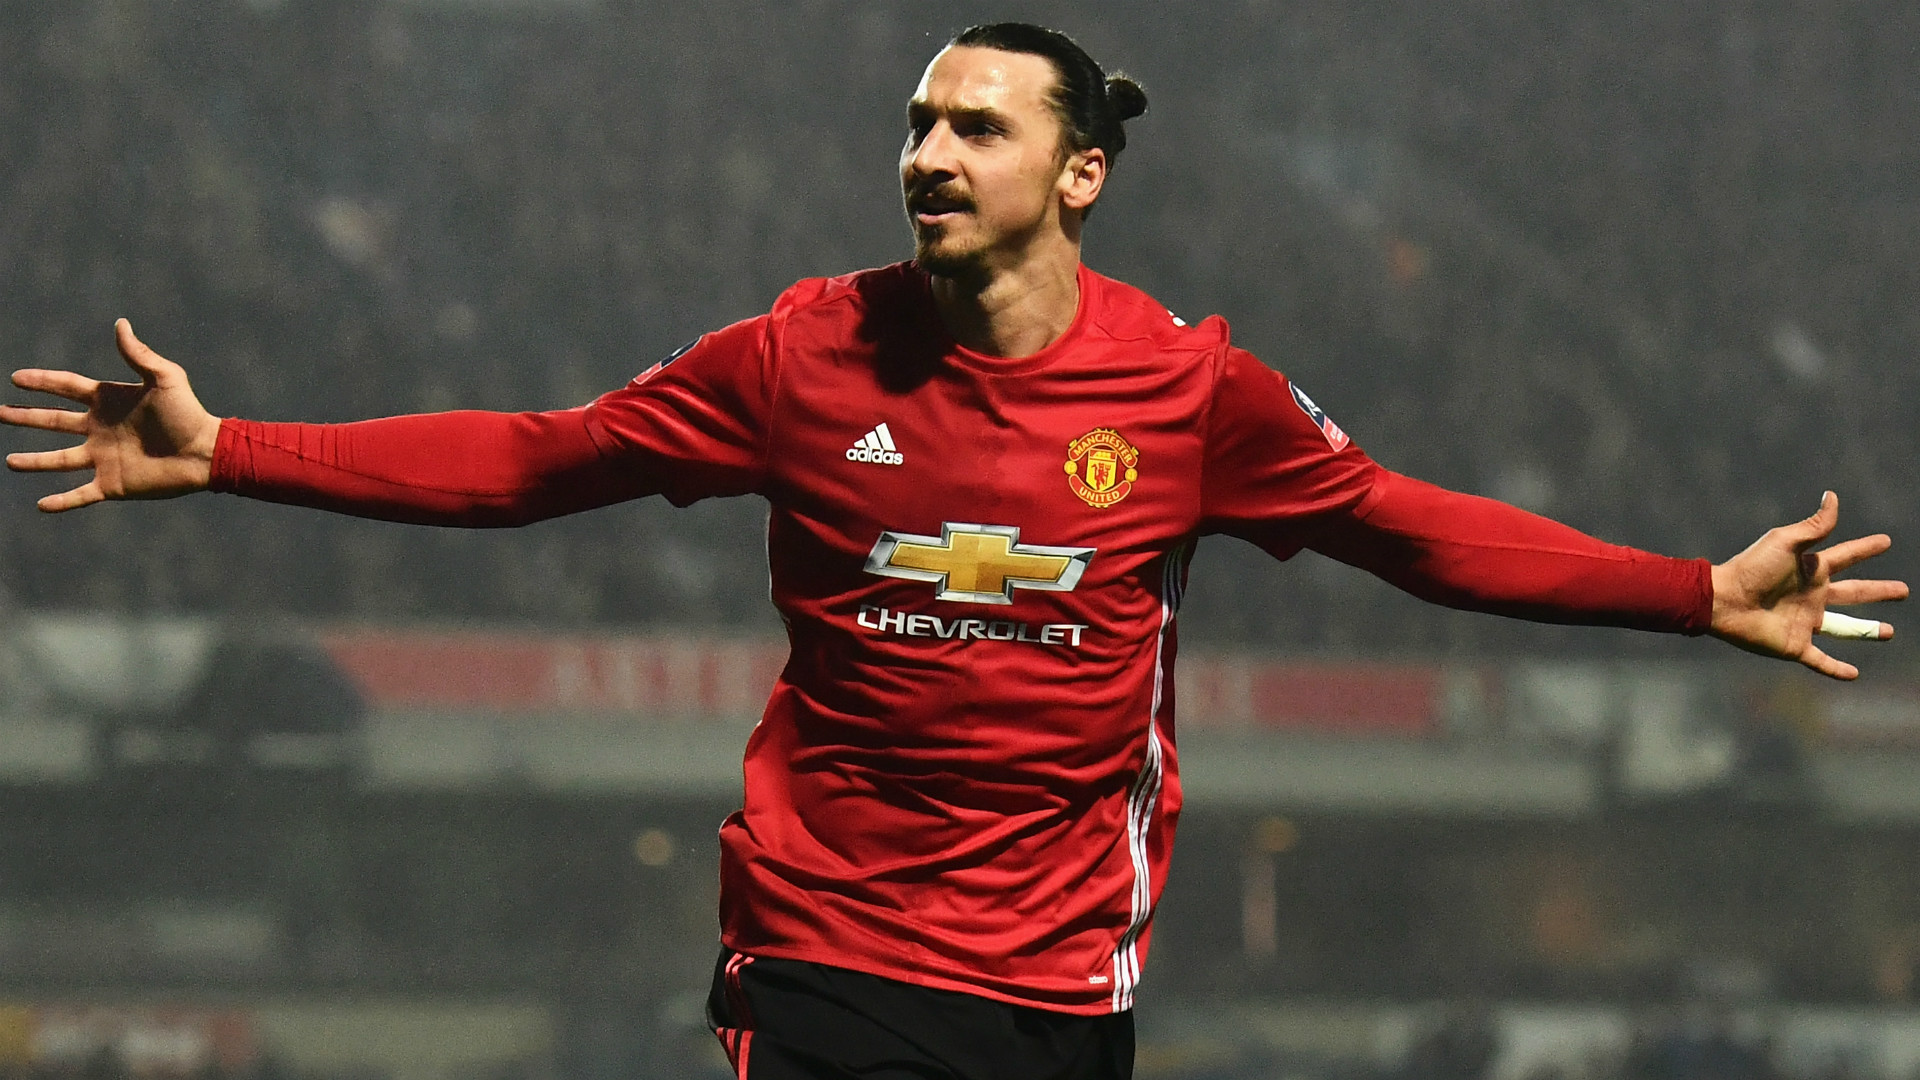 Others have to stand up blind backs man utd to cope without hd zlatan ibrahimovic manchester united voltagebd Image collections